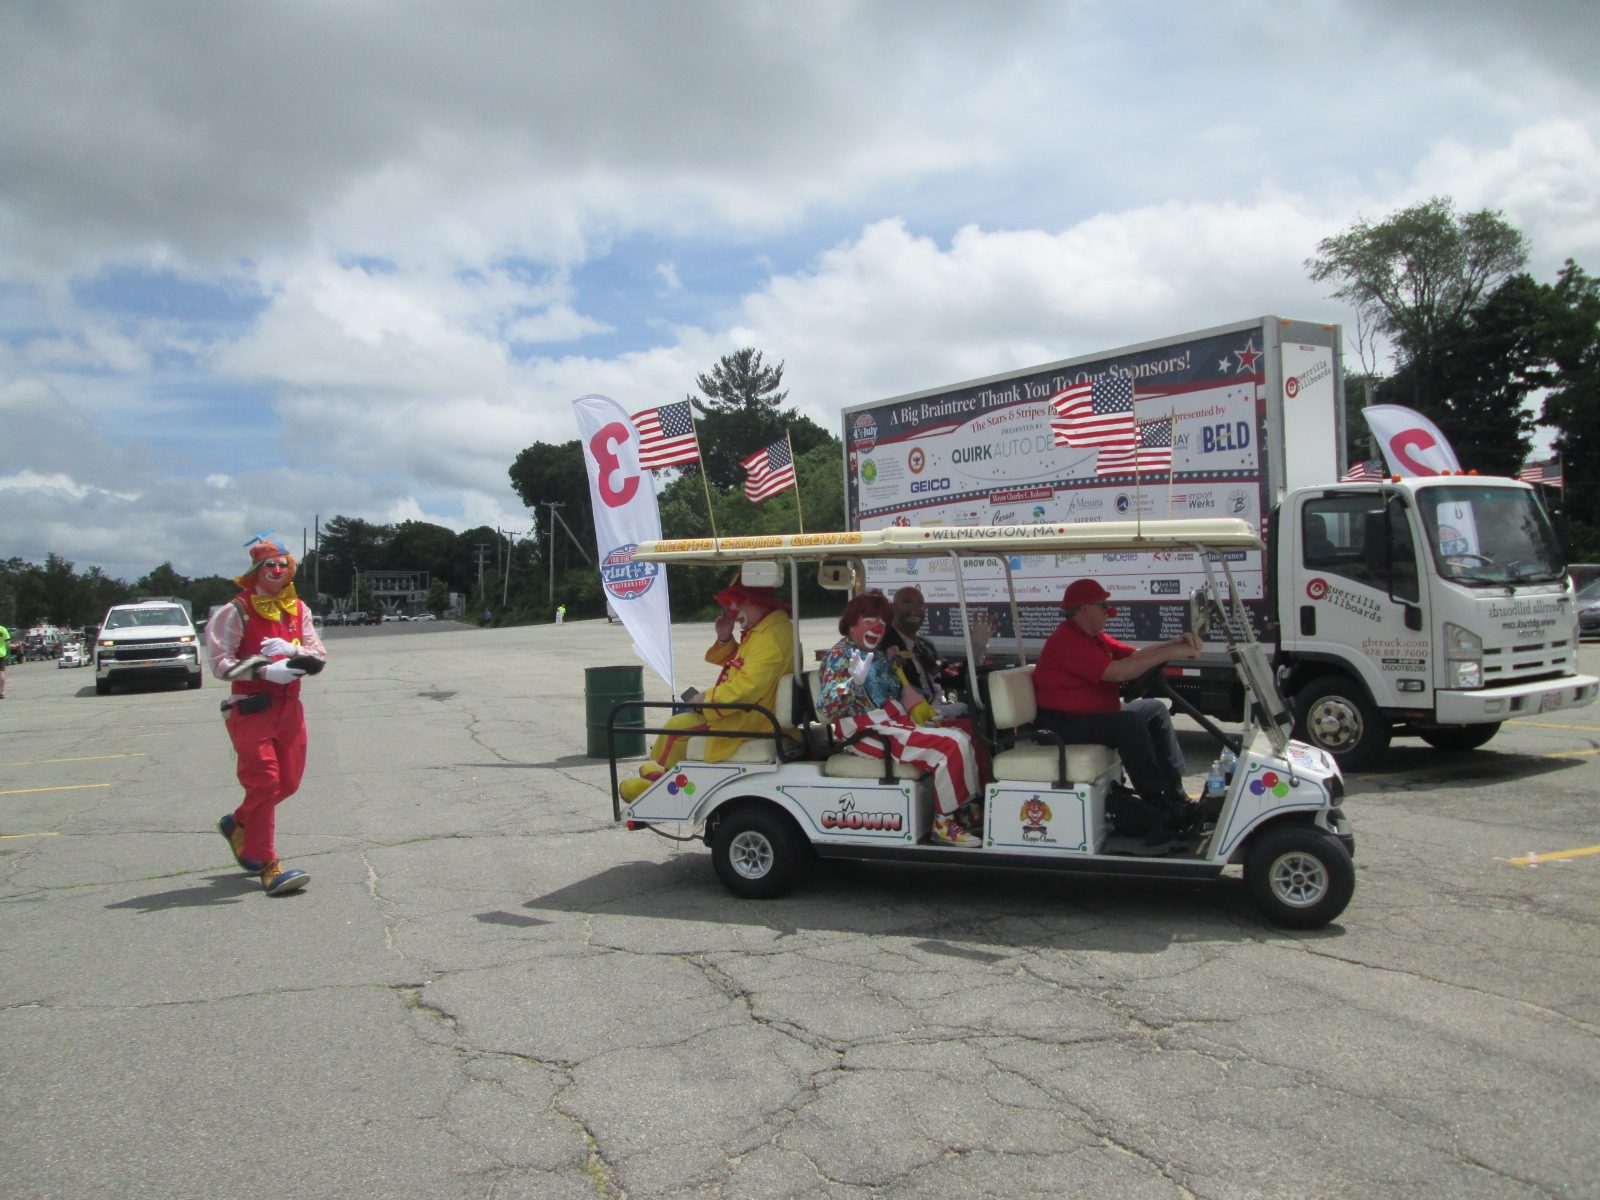 Billboard truck and Shriners Clowns at 2021 Braintree July 4th Parade staging area